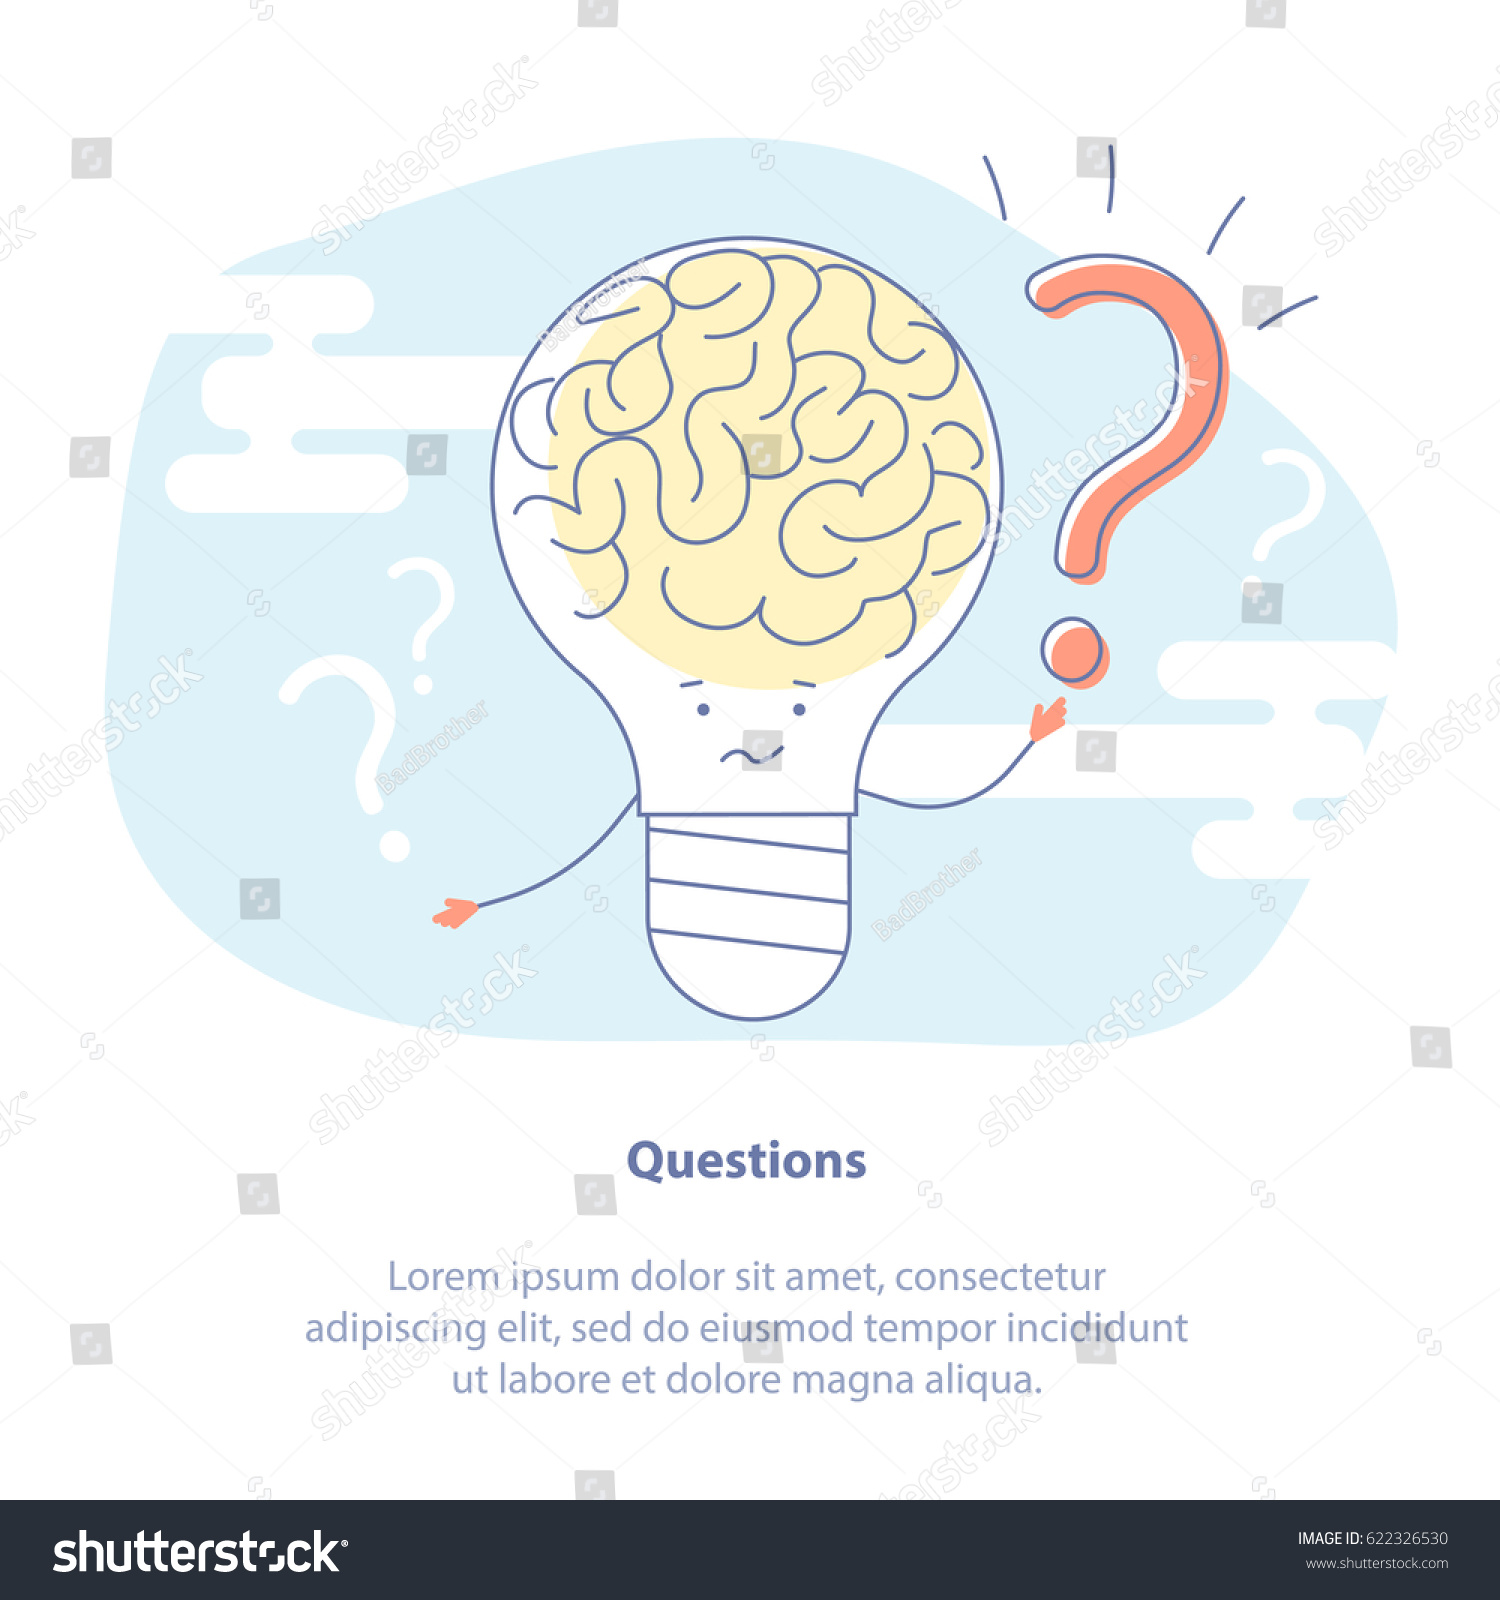 Flat line icon concept answers on stock vector 622326530 flat line icon concept of answers on questions faq manual or new idea generation ccuart Gallery